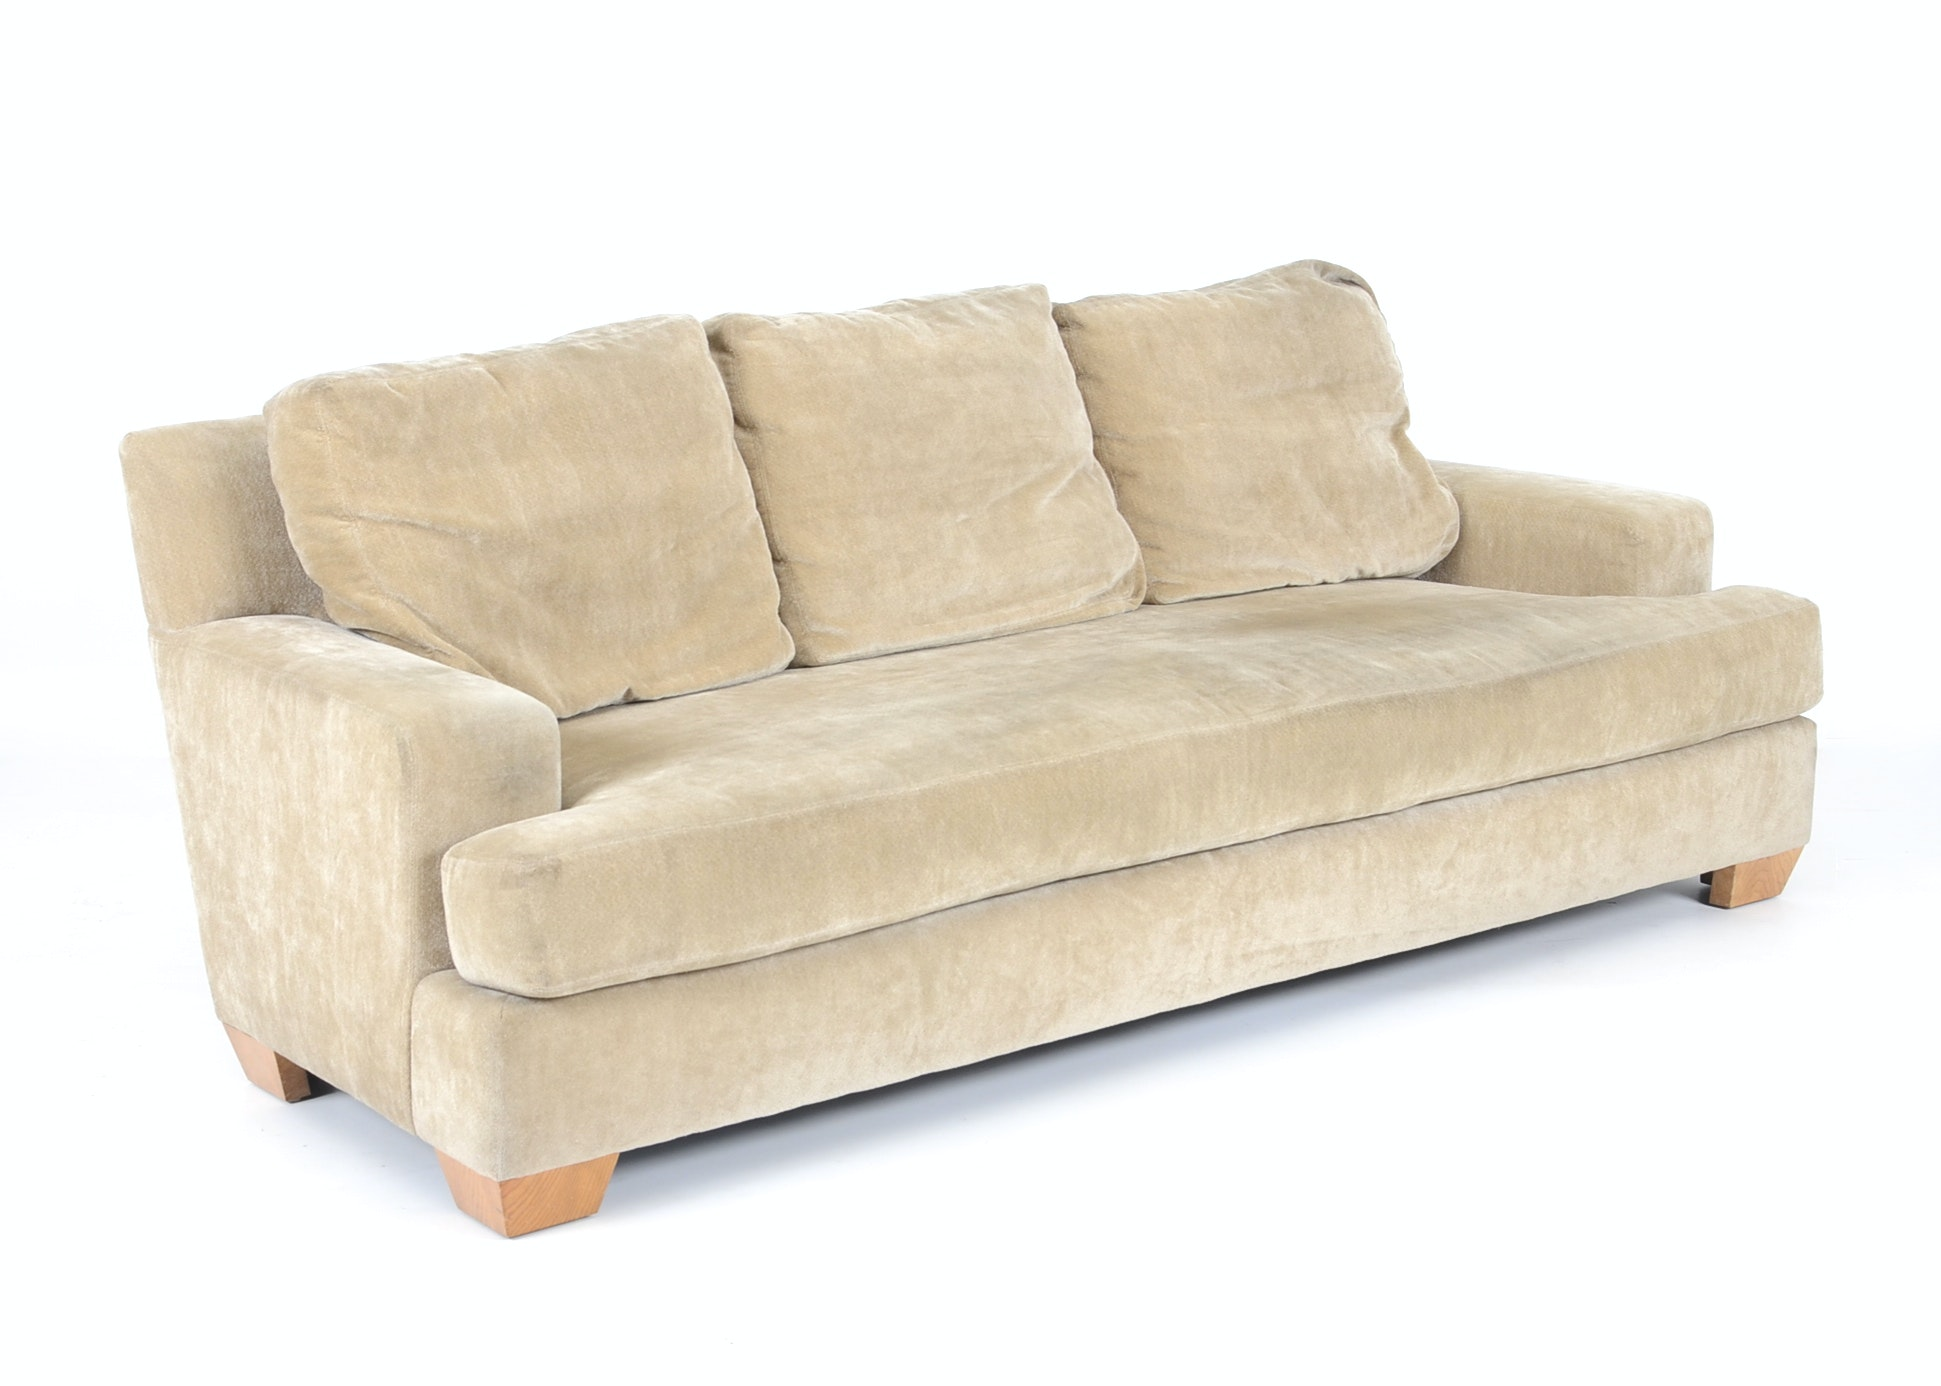 Directional Sofa Designed By Larry Laslo Ebth